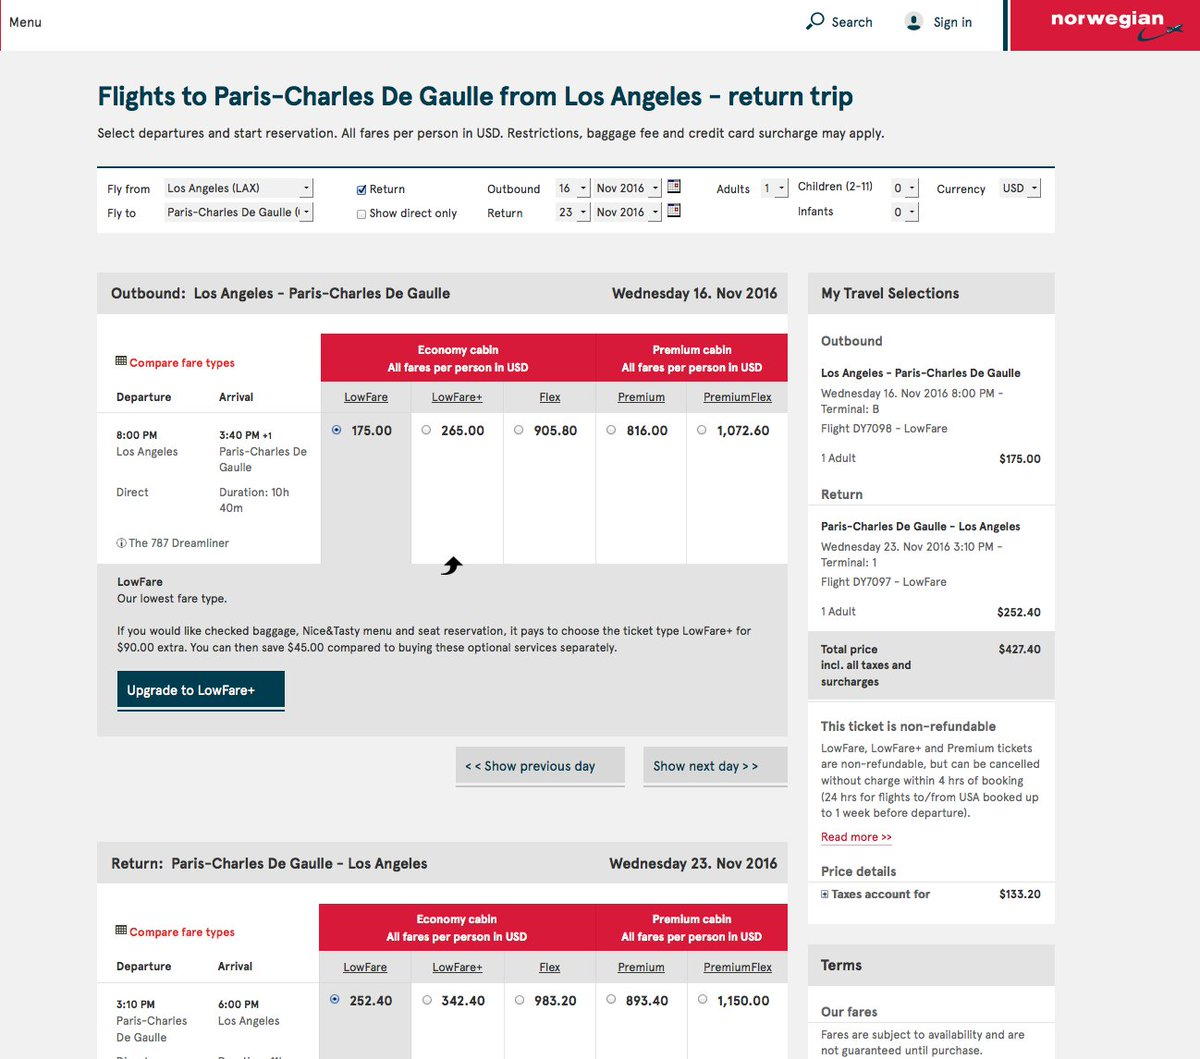 RT @airfarewatchdog: Los Angeles LAX to Paris CDG $428 on @Fly_Norwegian for fall travel.